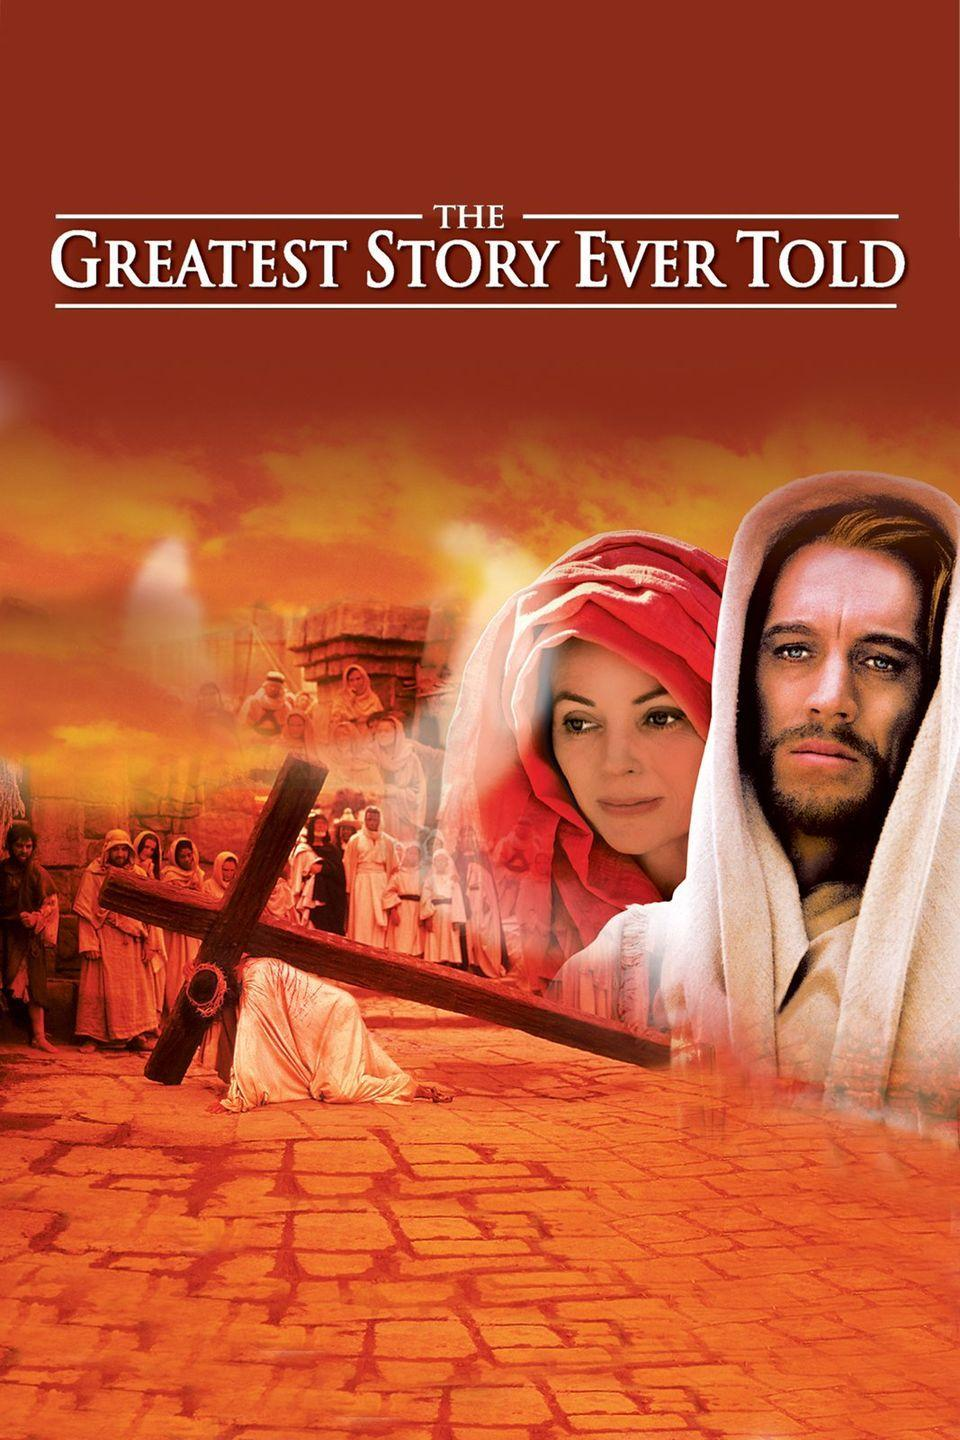 """<p>Based on a 1947 radio series inspired by the Gospels, <em>The Greatest Story Ever Told</em> is also long one (with a run time of over four hours), but it certainly is one of the greatest retellings of Christ's life, from his birth in Bethlehem to his death and eventual resurrection.</p><p><a class=""""link rapid-noclick-resp"""" href=""""https://pluto.tv/on-demand/movies/the-greatest-story-ever-told-1965-1-1"""" rel=""""nofollow noopener"""" target=""""_blank"""" data-ylk=""""slk:STREAM NOW"""">STREAM NOW</a></p>"""